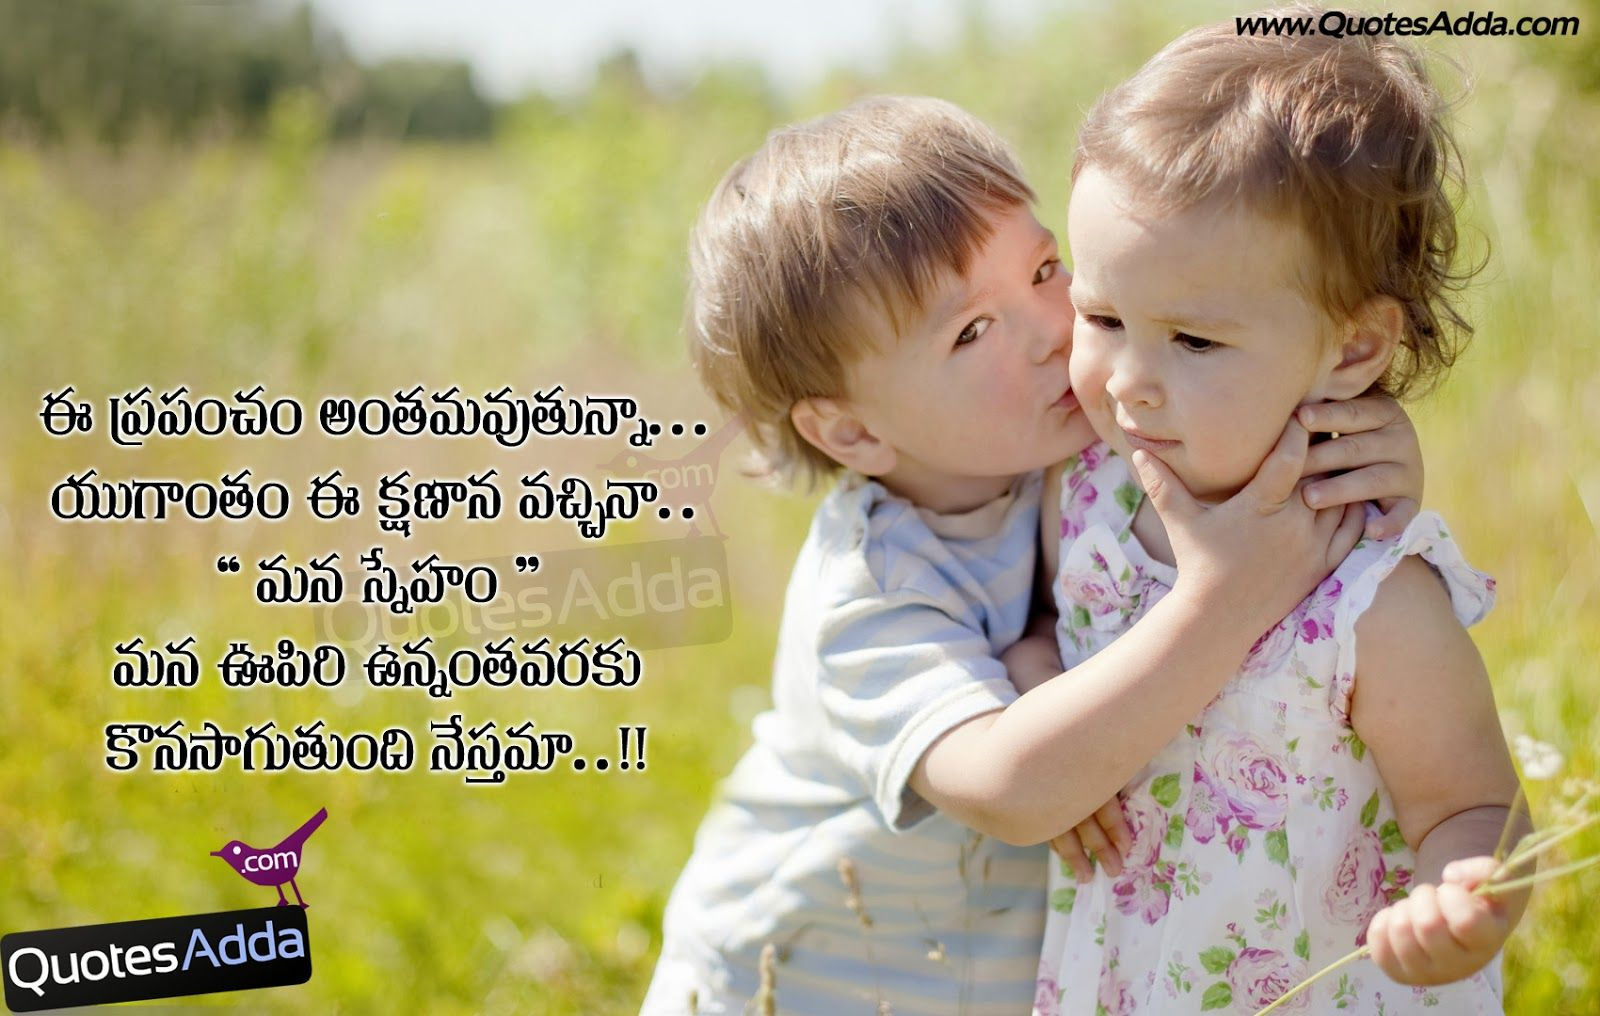 Child Quotes In Tamil By Sathguru With Cute Children Photos Images Quotes By Famous People People Quotes Quotes For Kids